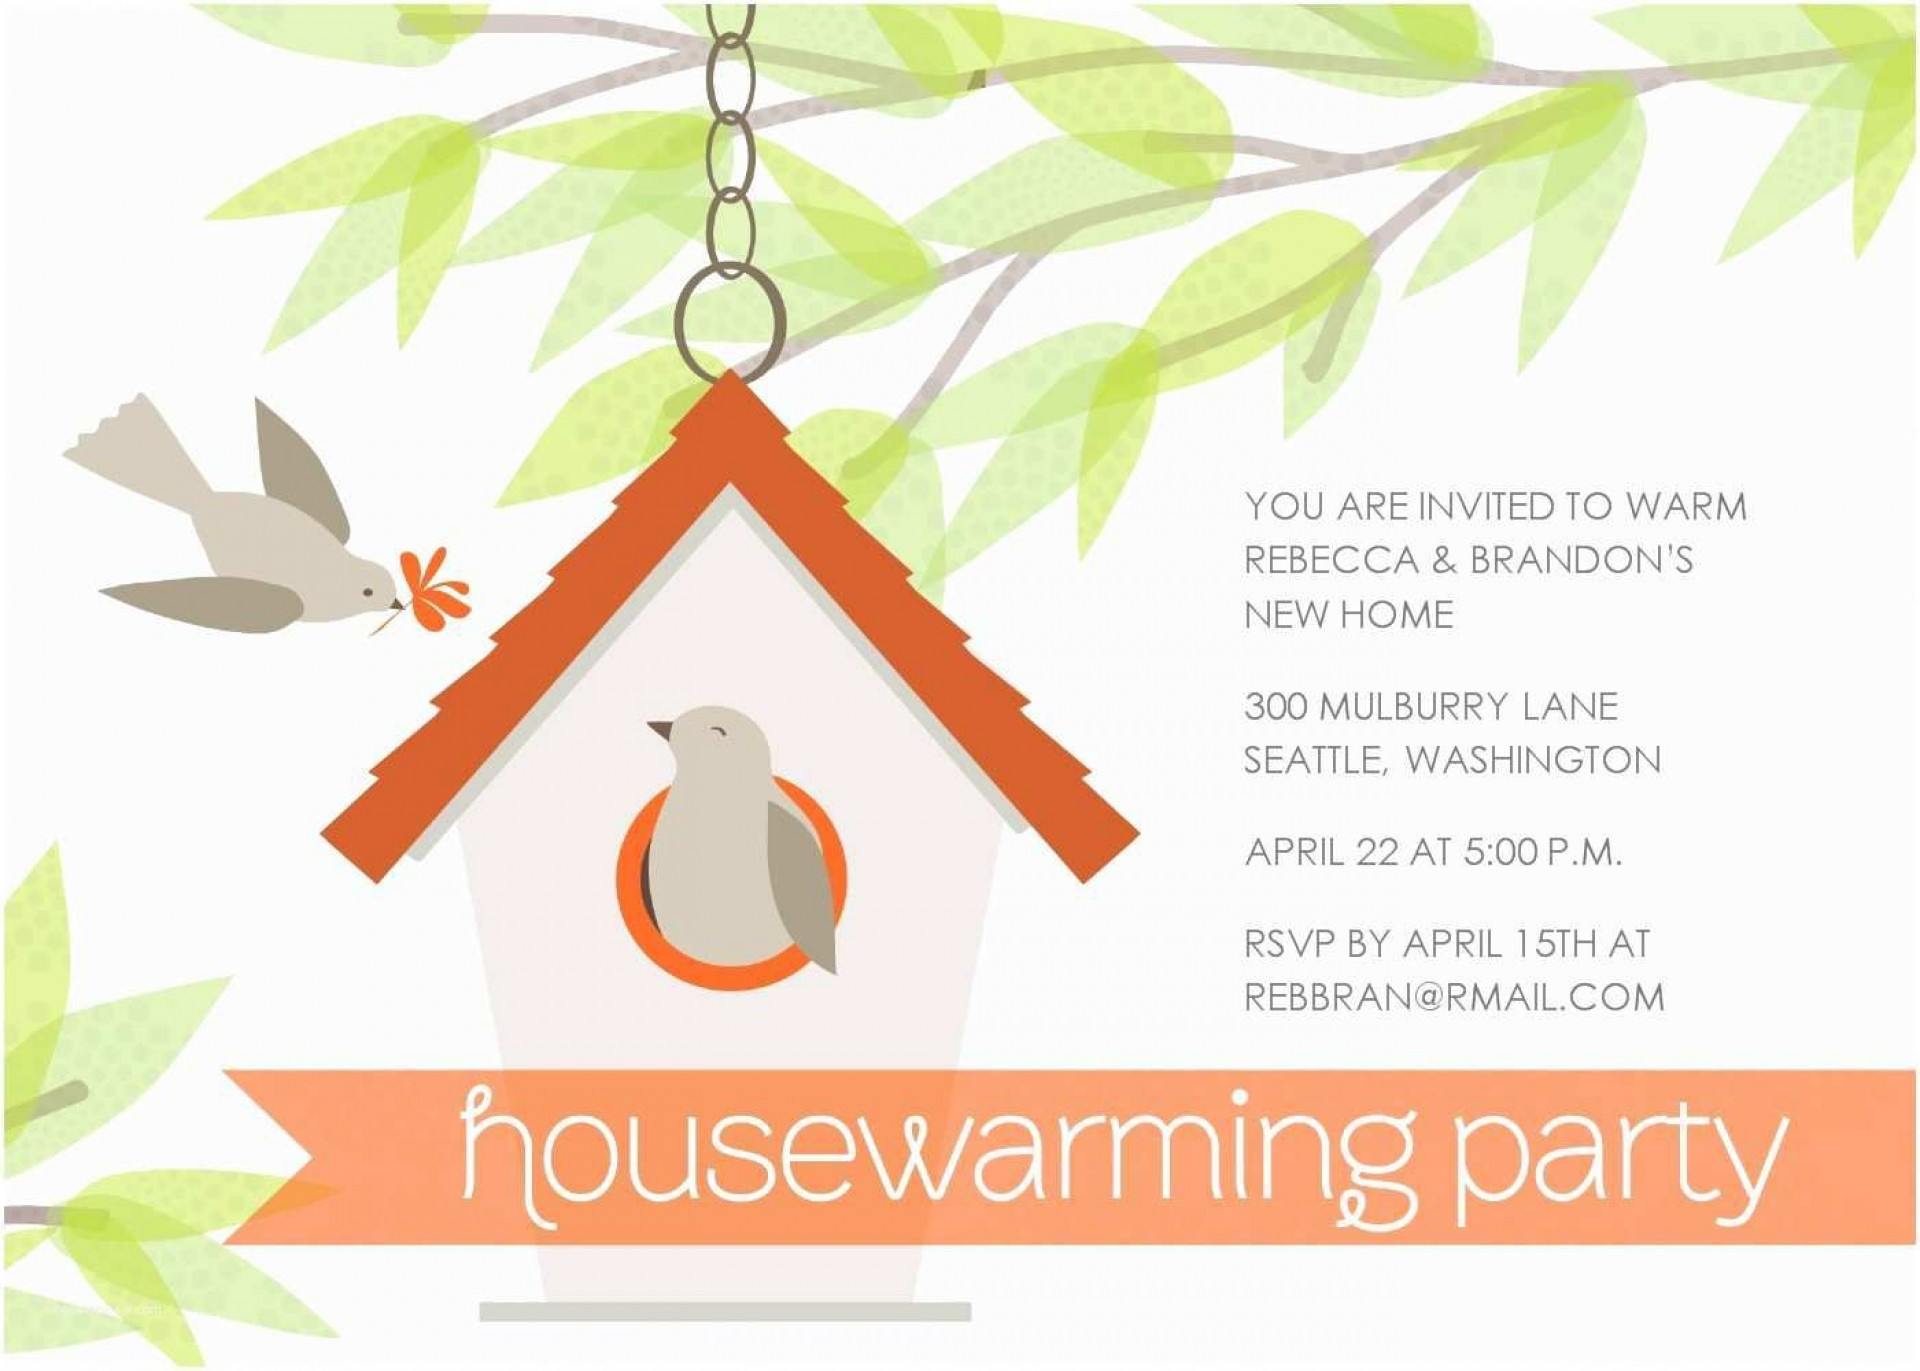 013 Stupendou Housewarming Party Invitation Template High Definition  Templates Free Download Card1920